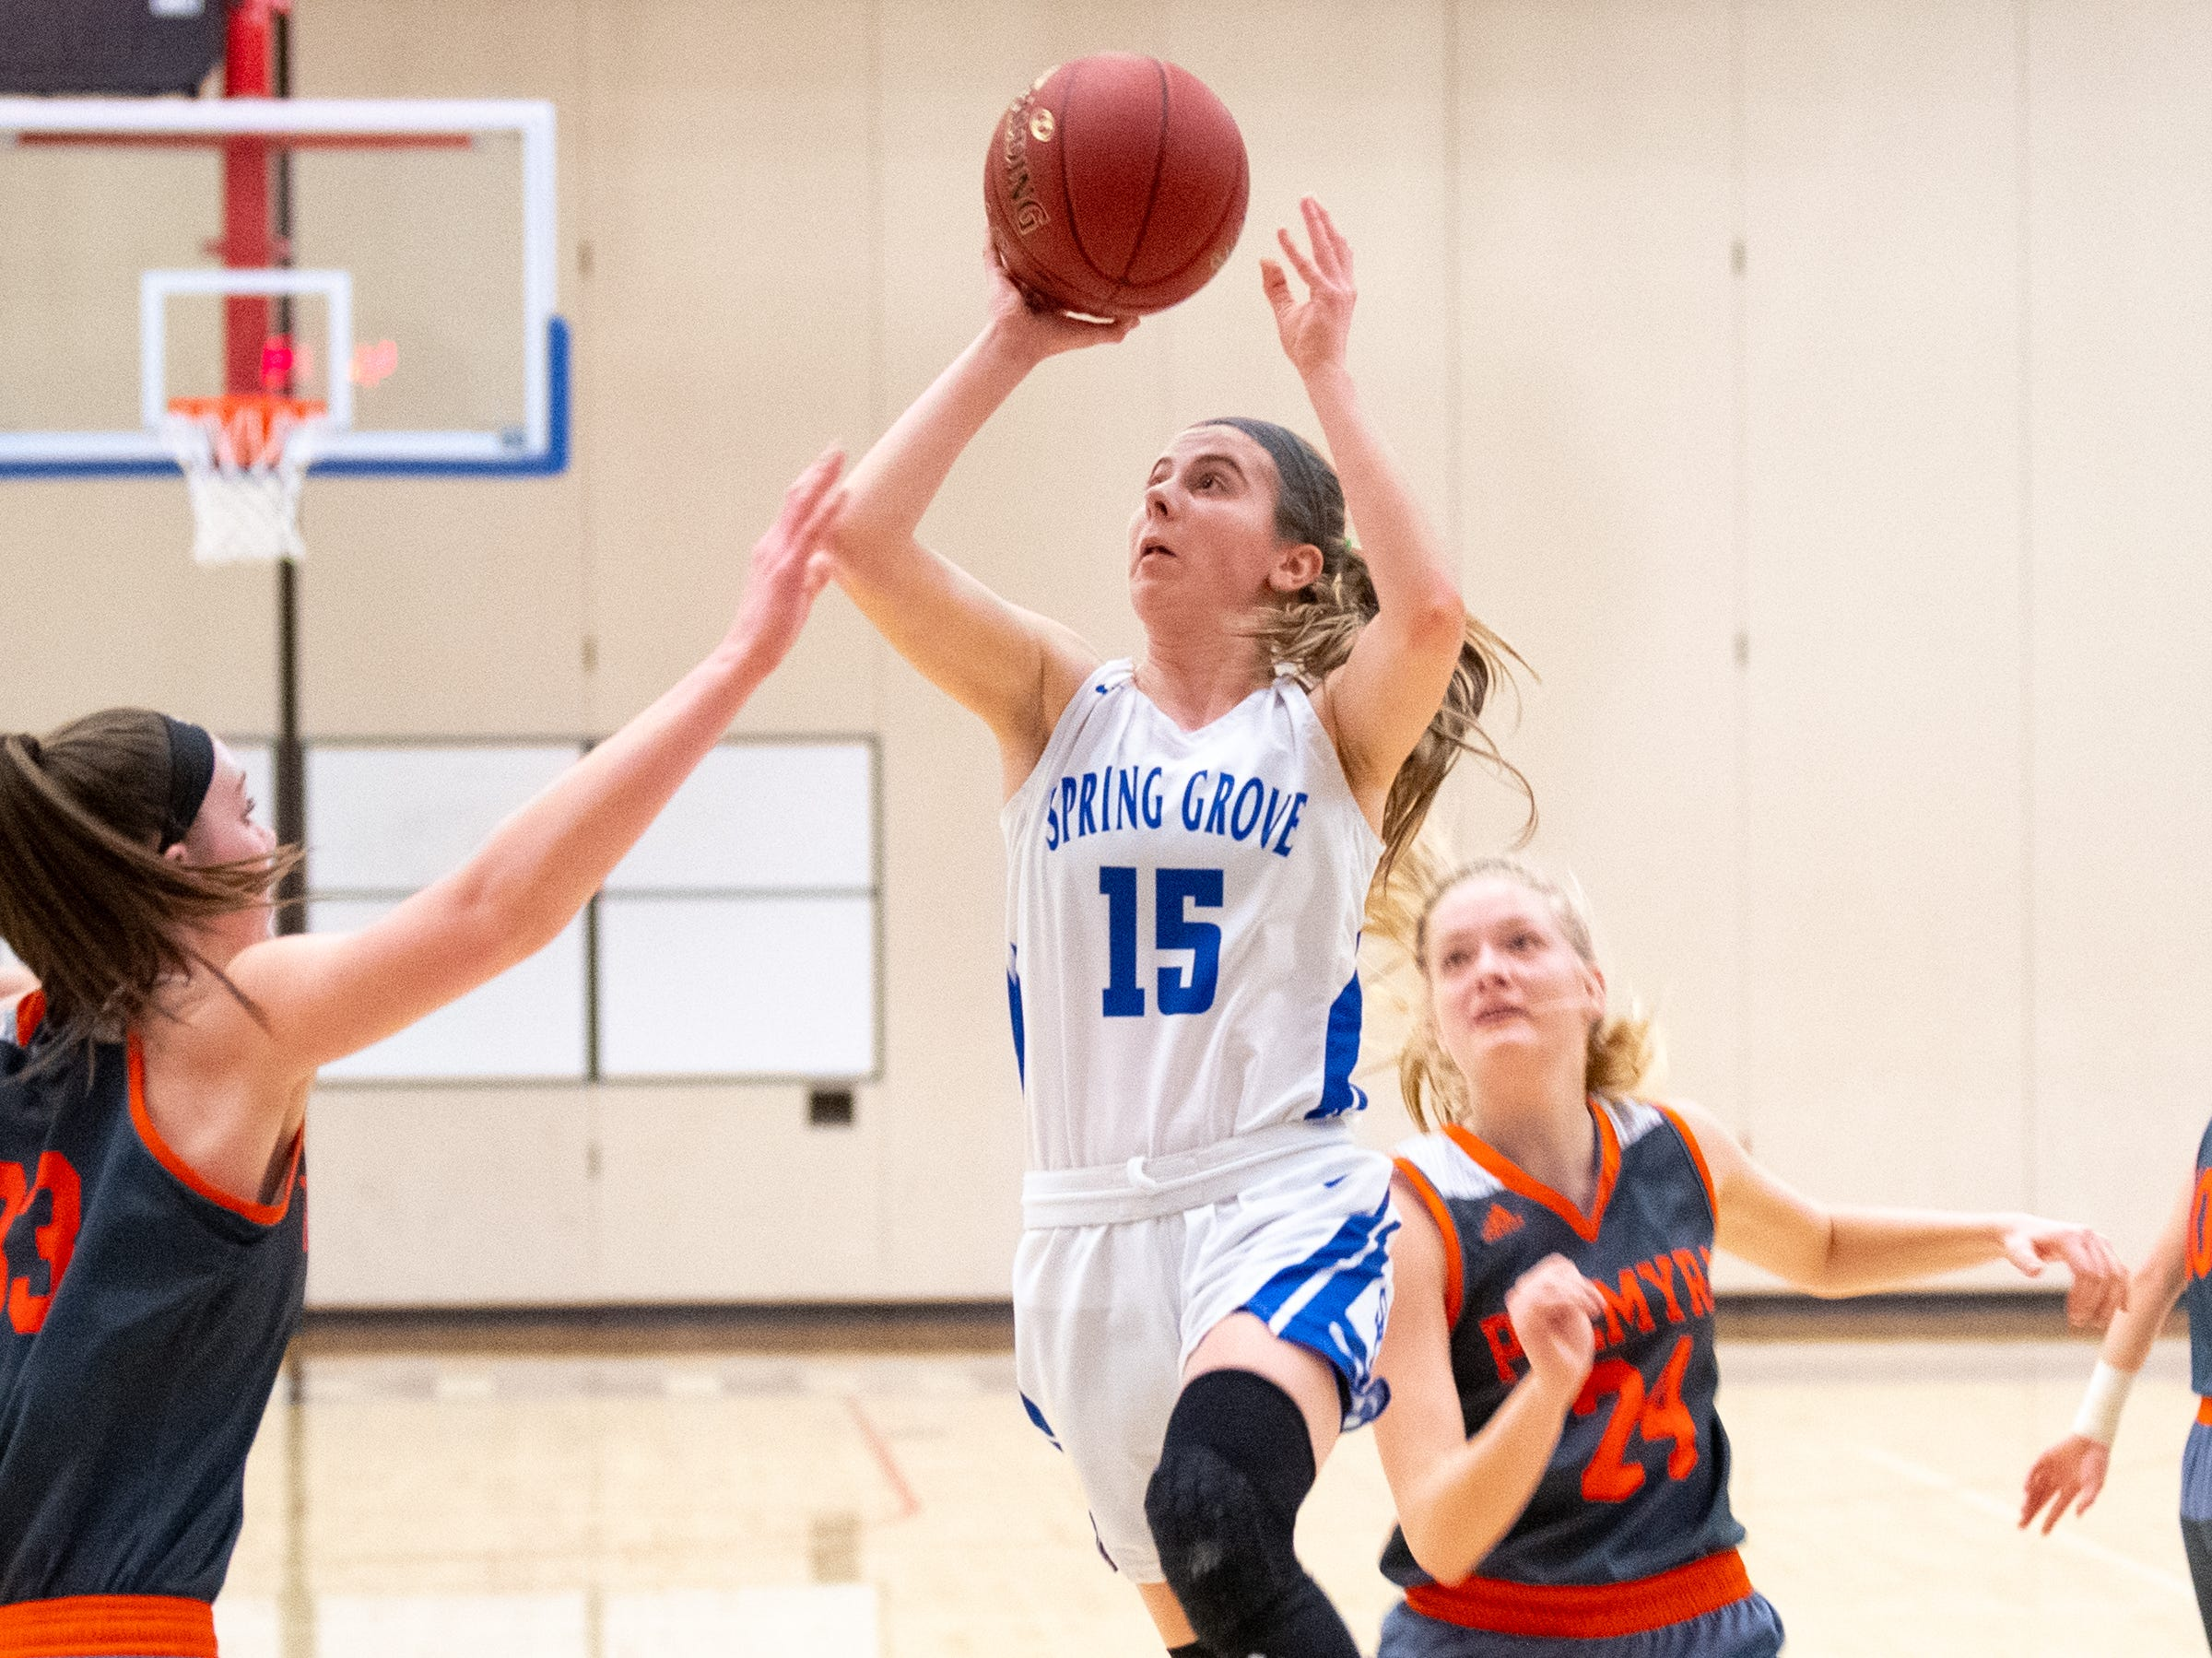 Lexi Hoffman (15) rises up during the District 3 Class 5A girls' basketball quarterfinal between Spring Grove and Palmyra, Friday, February 22, 2019 at Spring Grove Area High School. The Cougars defeated the Rockets 43 to 41.